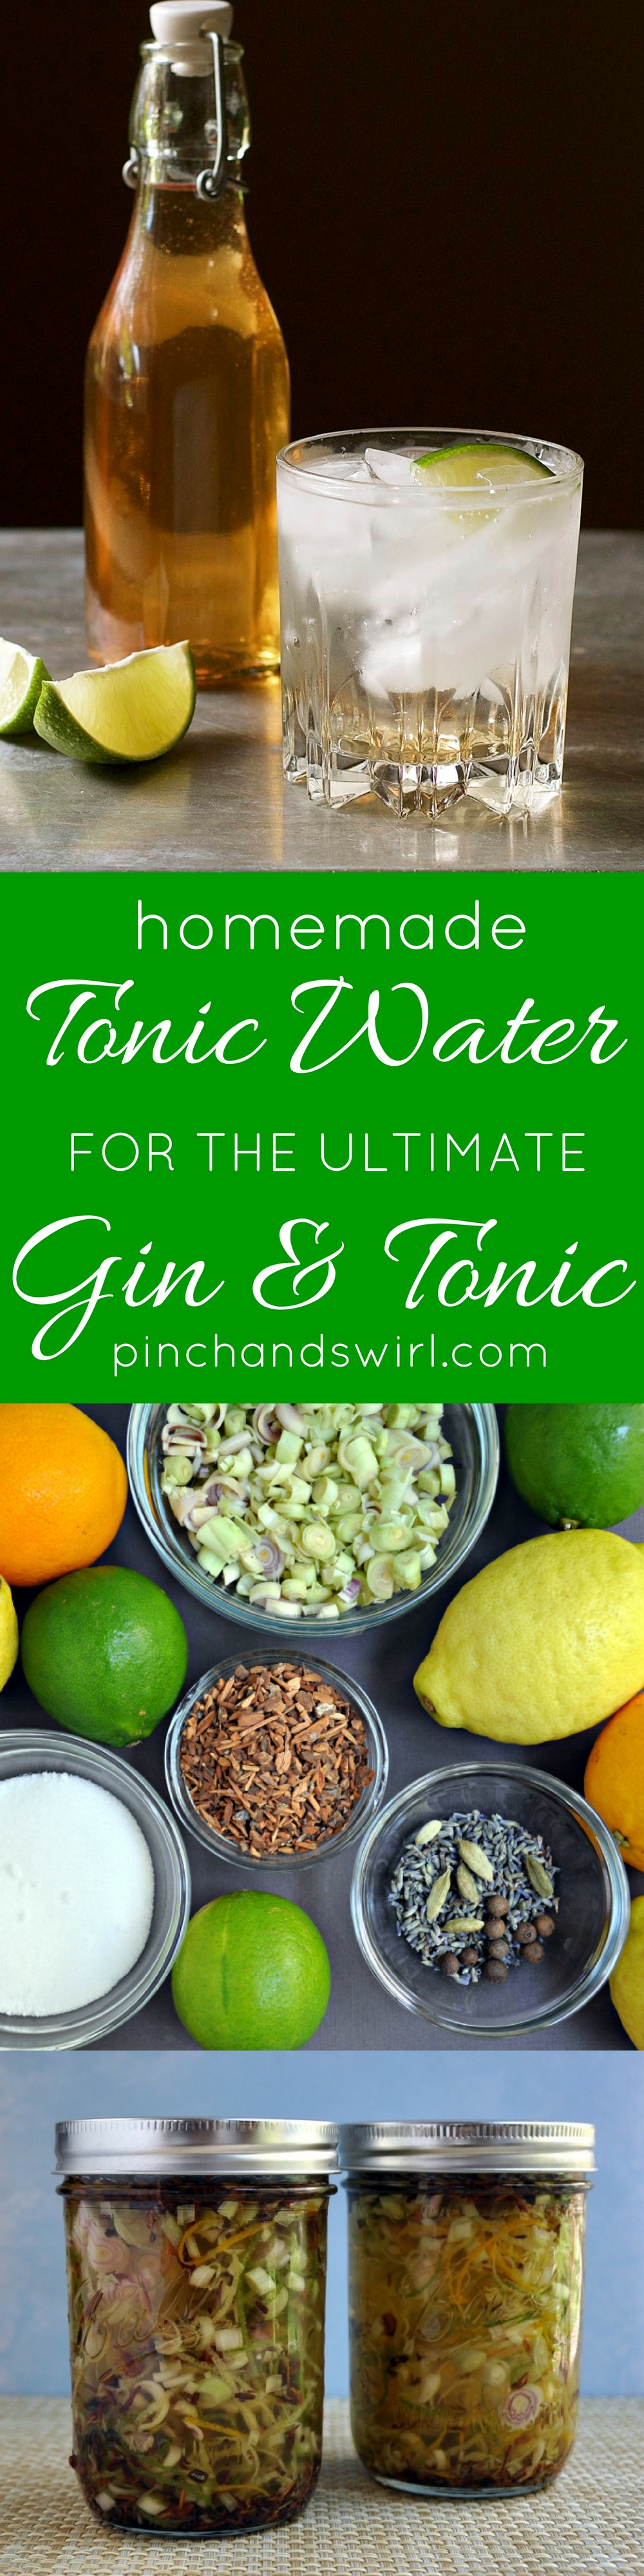 Homemade Tonic Water for the Ultimate Gin and Tonic! #cocktails #easyrecipes #ginandtonic